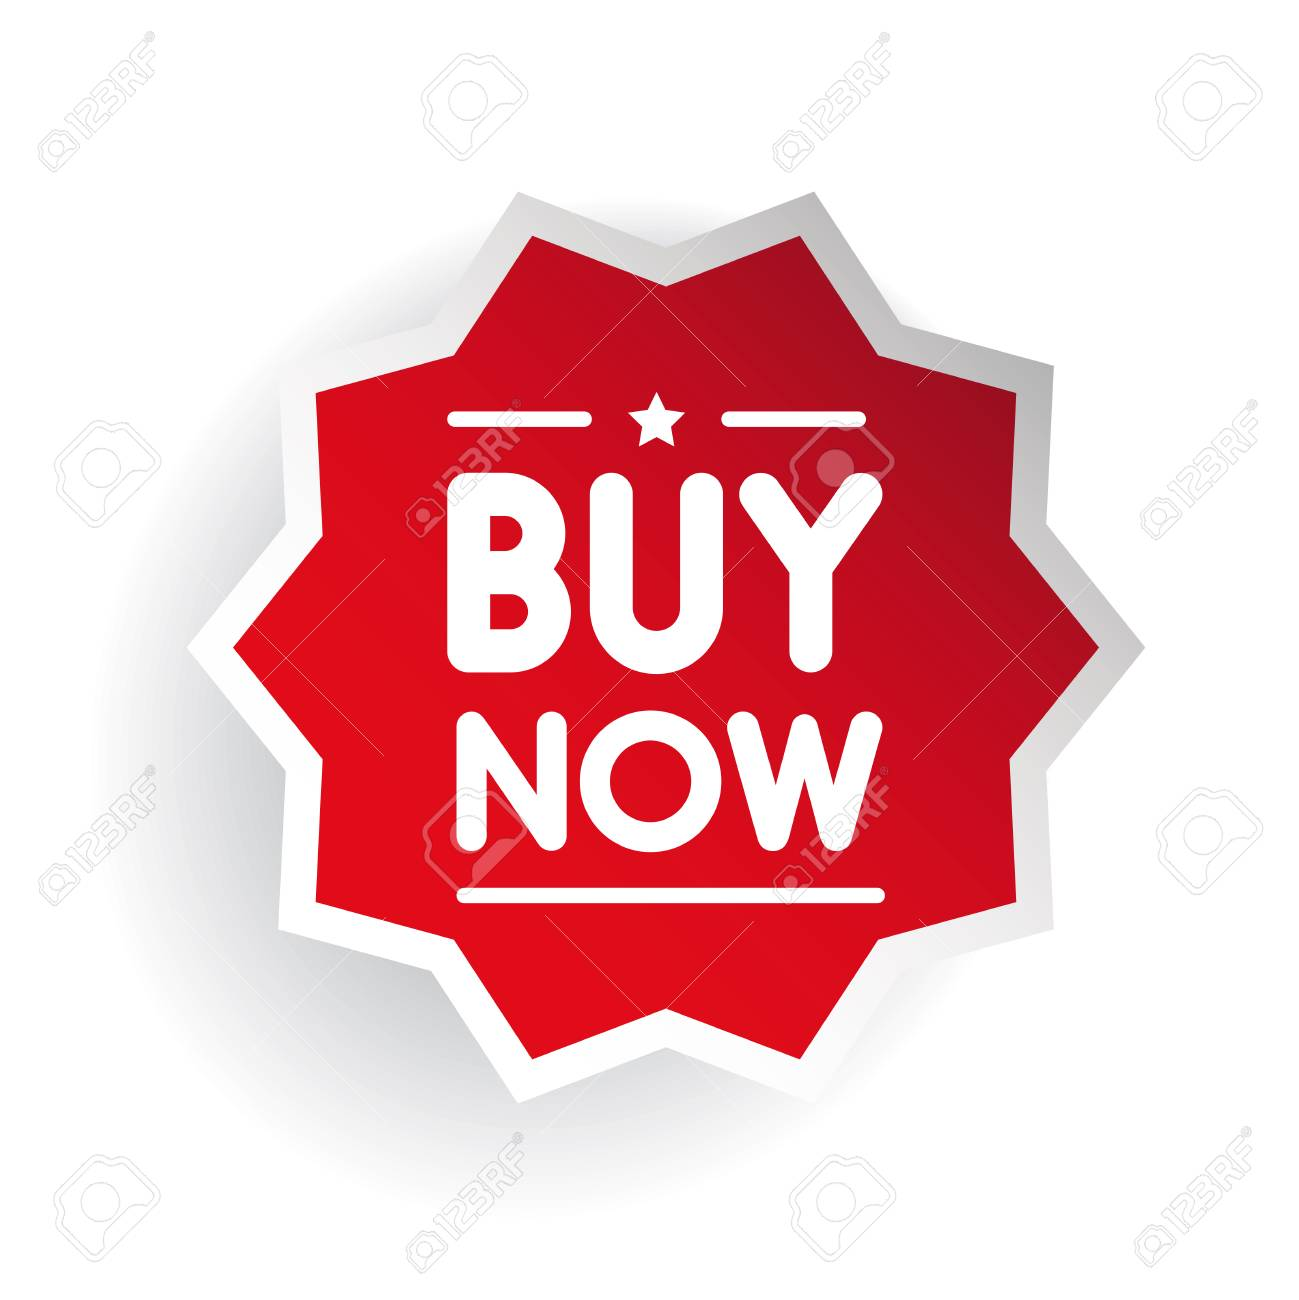 Buy Now Red Sticker Or Label Vector